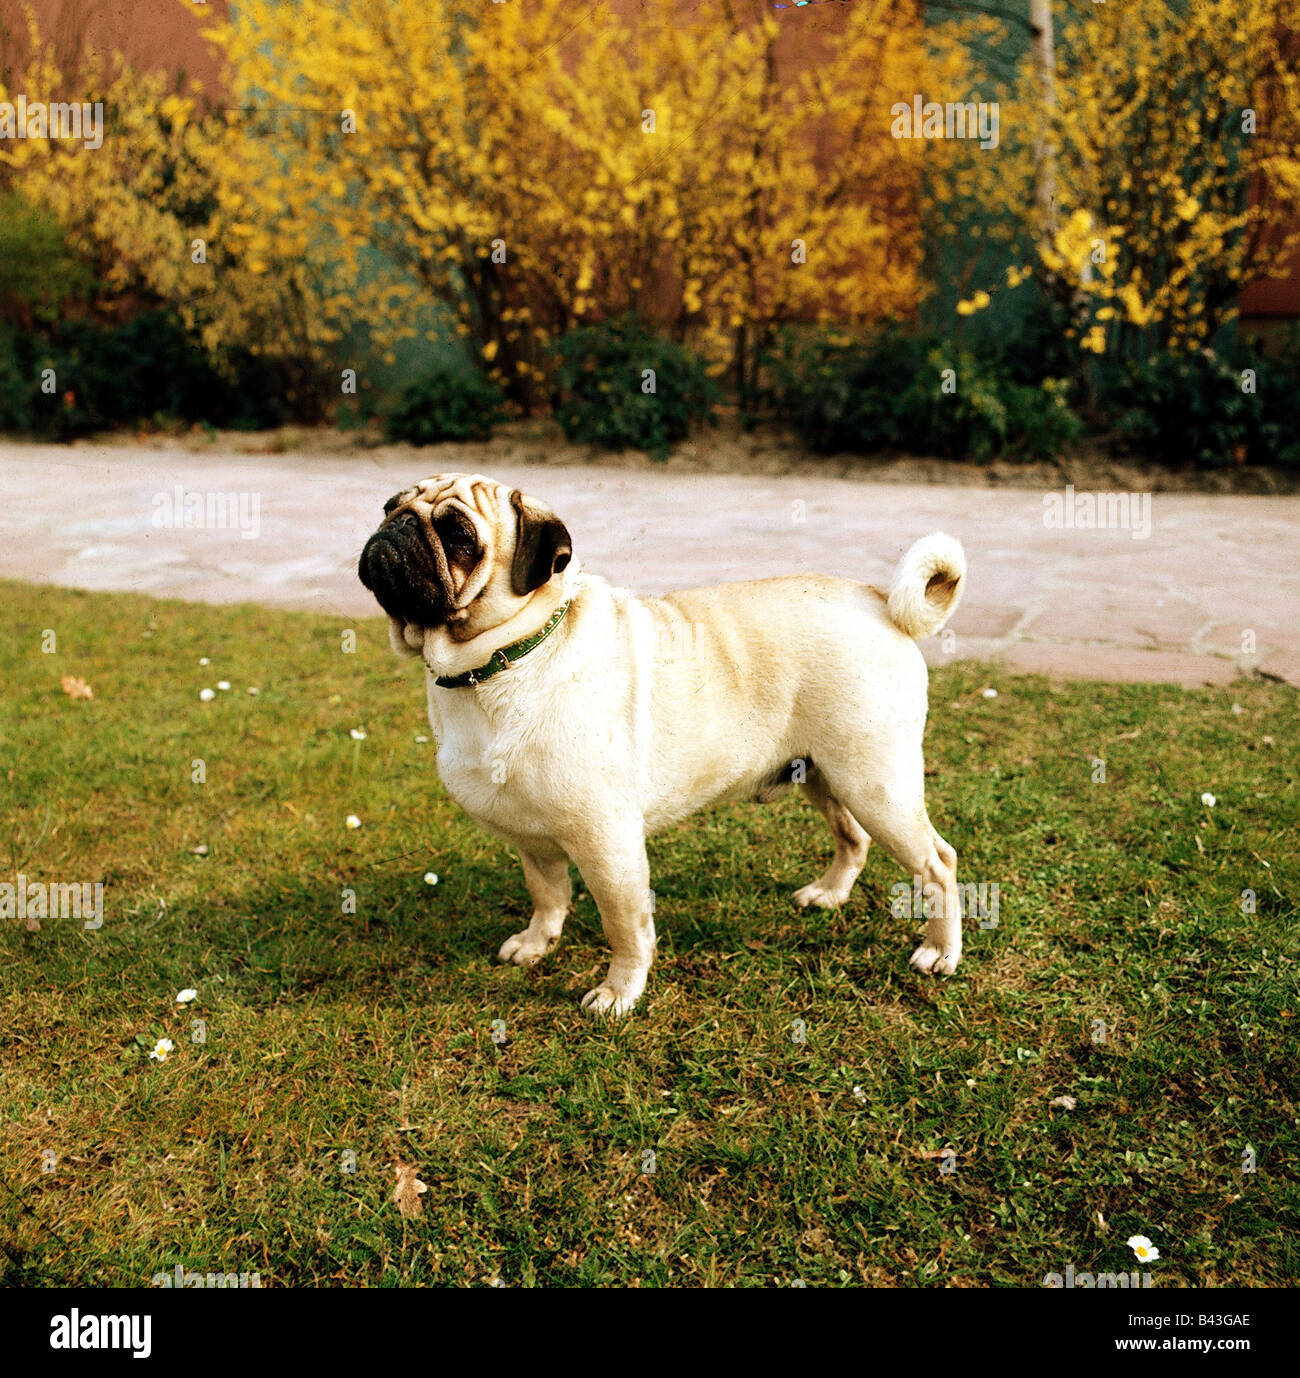 zoology / animals, mammal / mammalian, dogs, (Canis lupus , Additional-Rights-Clearance-Info-Not-Available - Stock Image